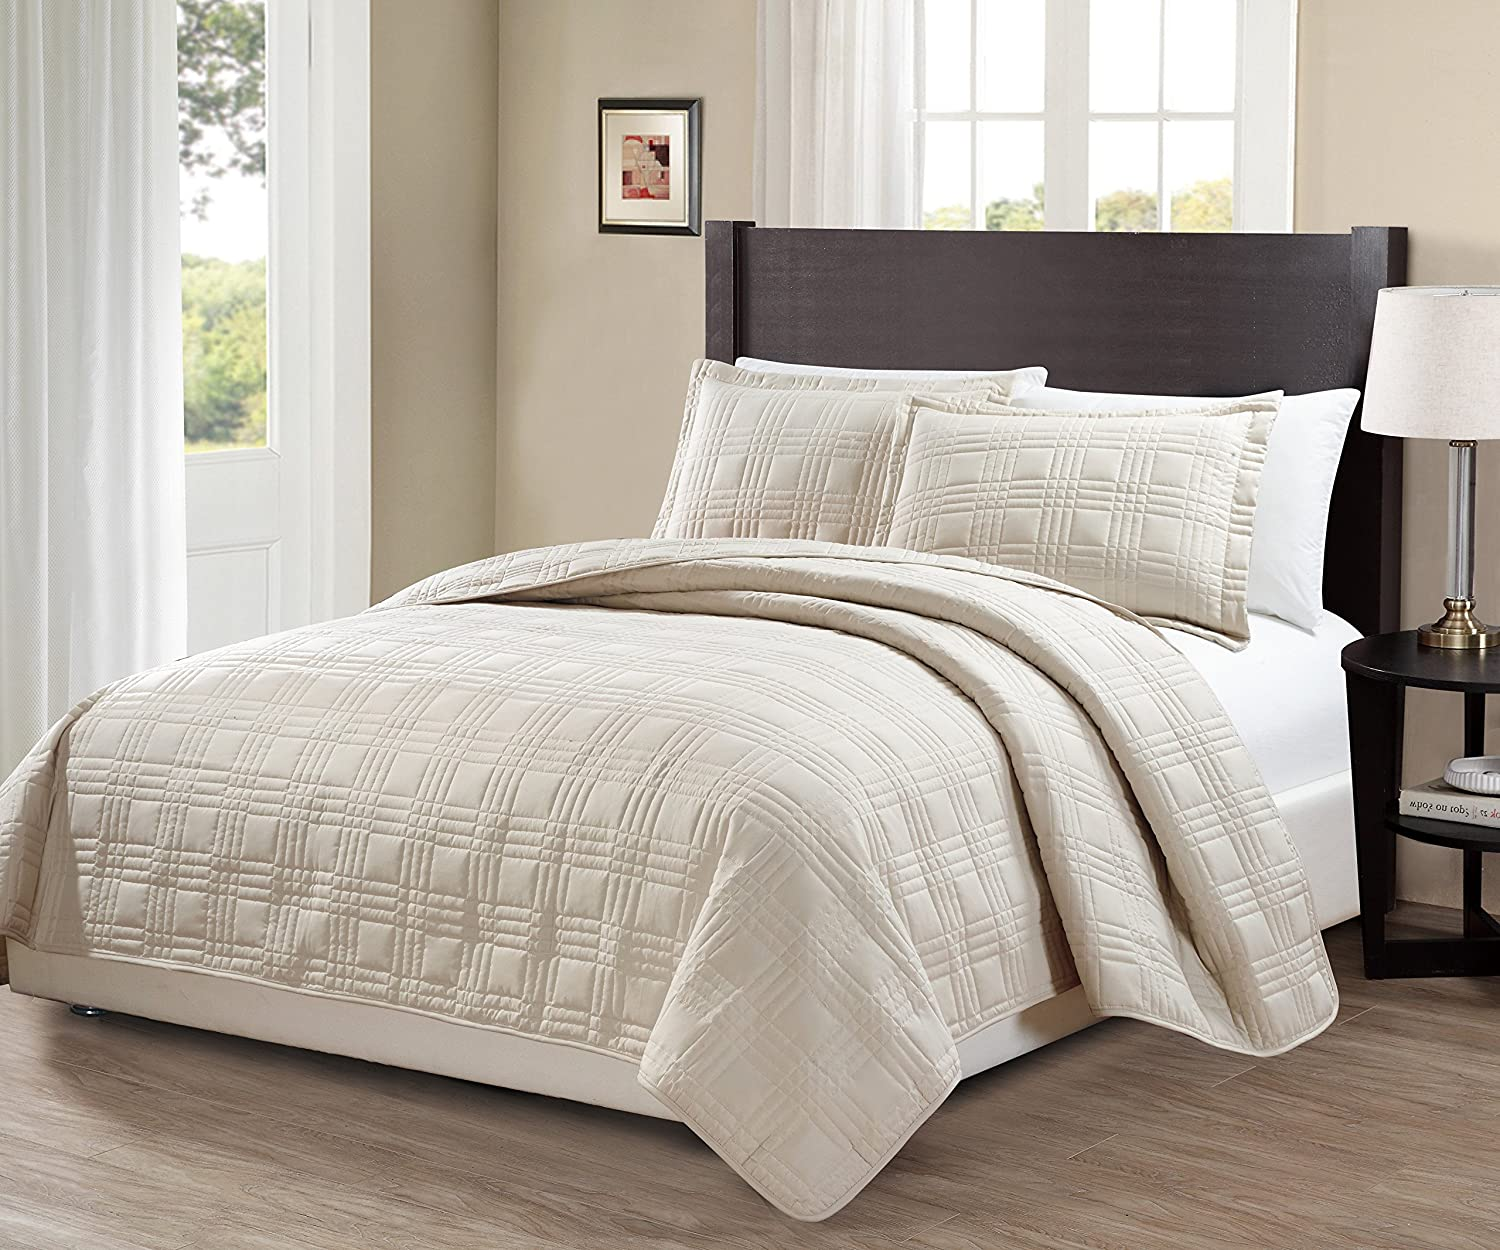 king california king over size 3 pc bedspread bed cover quilted embroidery beige ebay. Black Bedroom Furniture Sets. Home Design Ideas